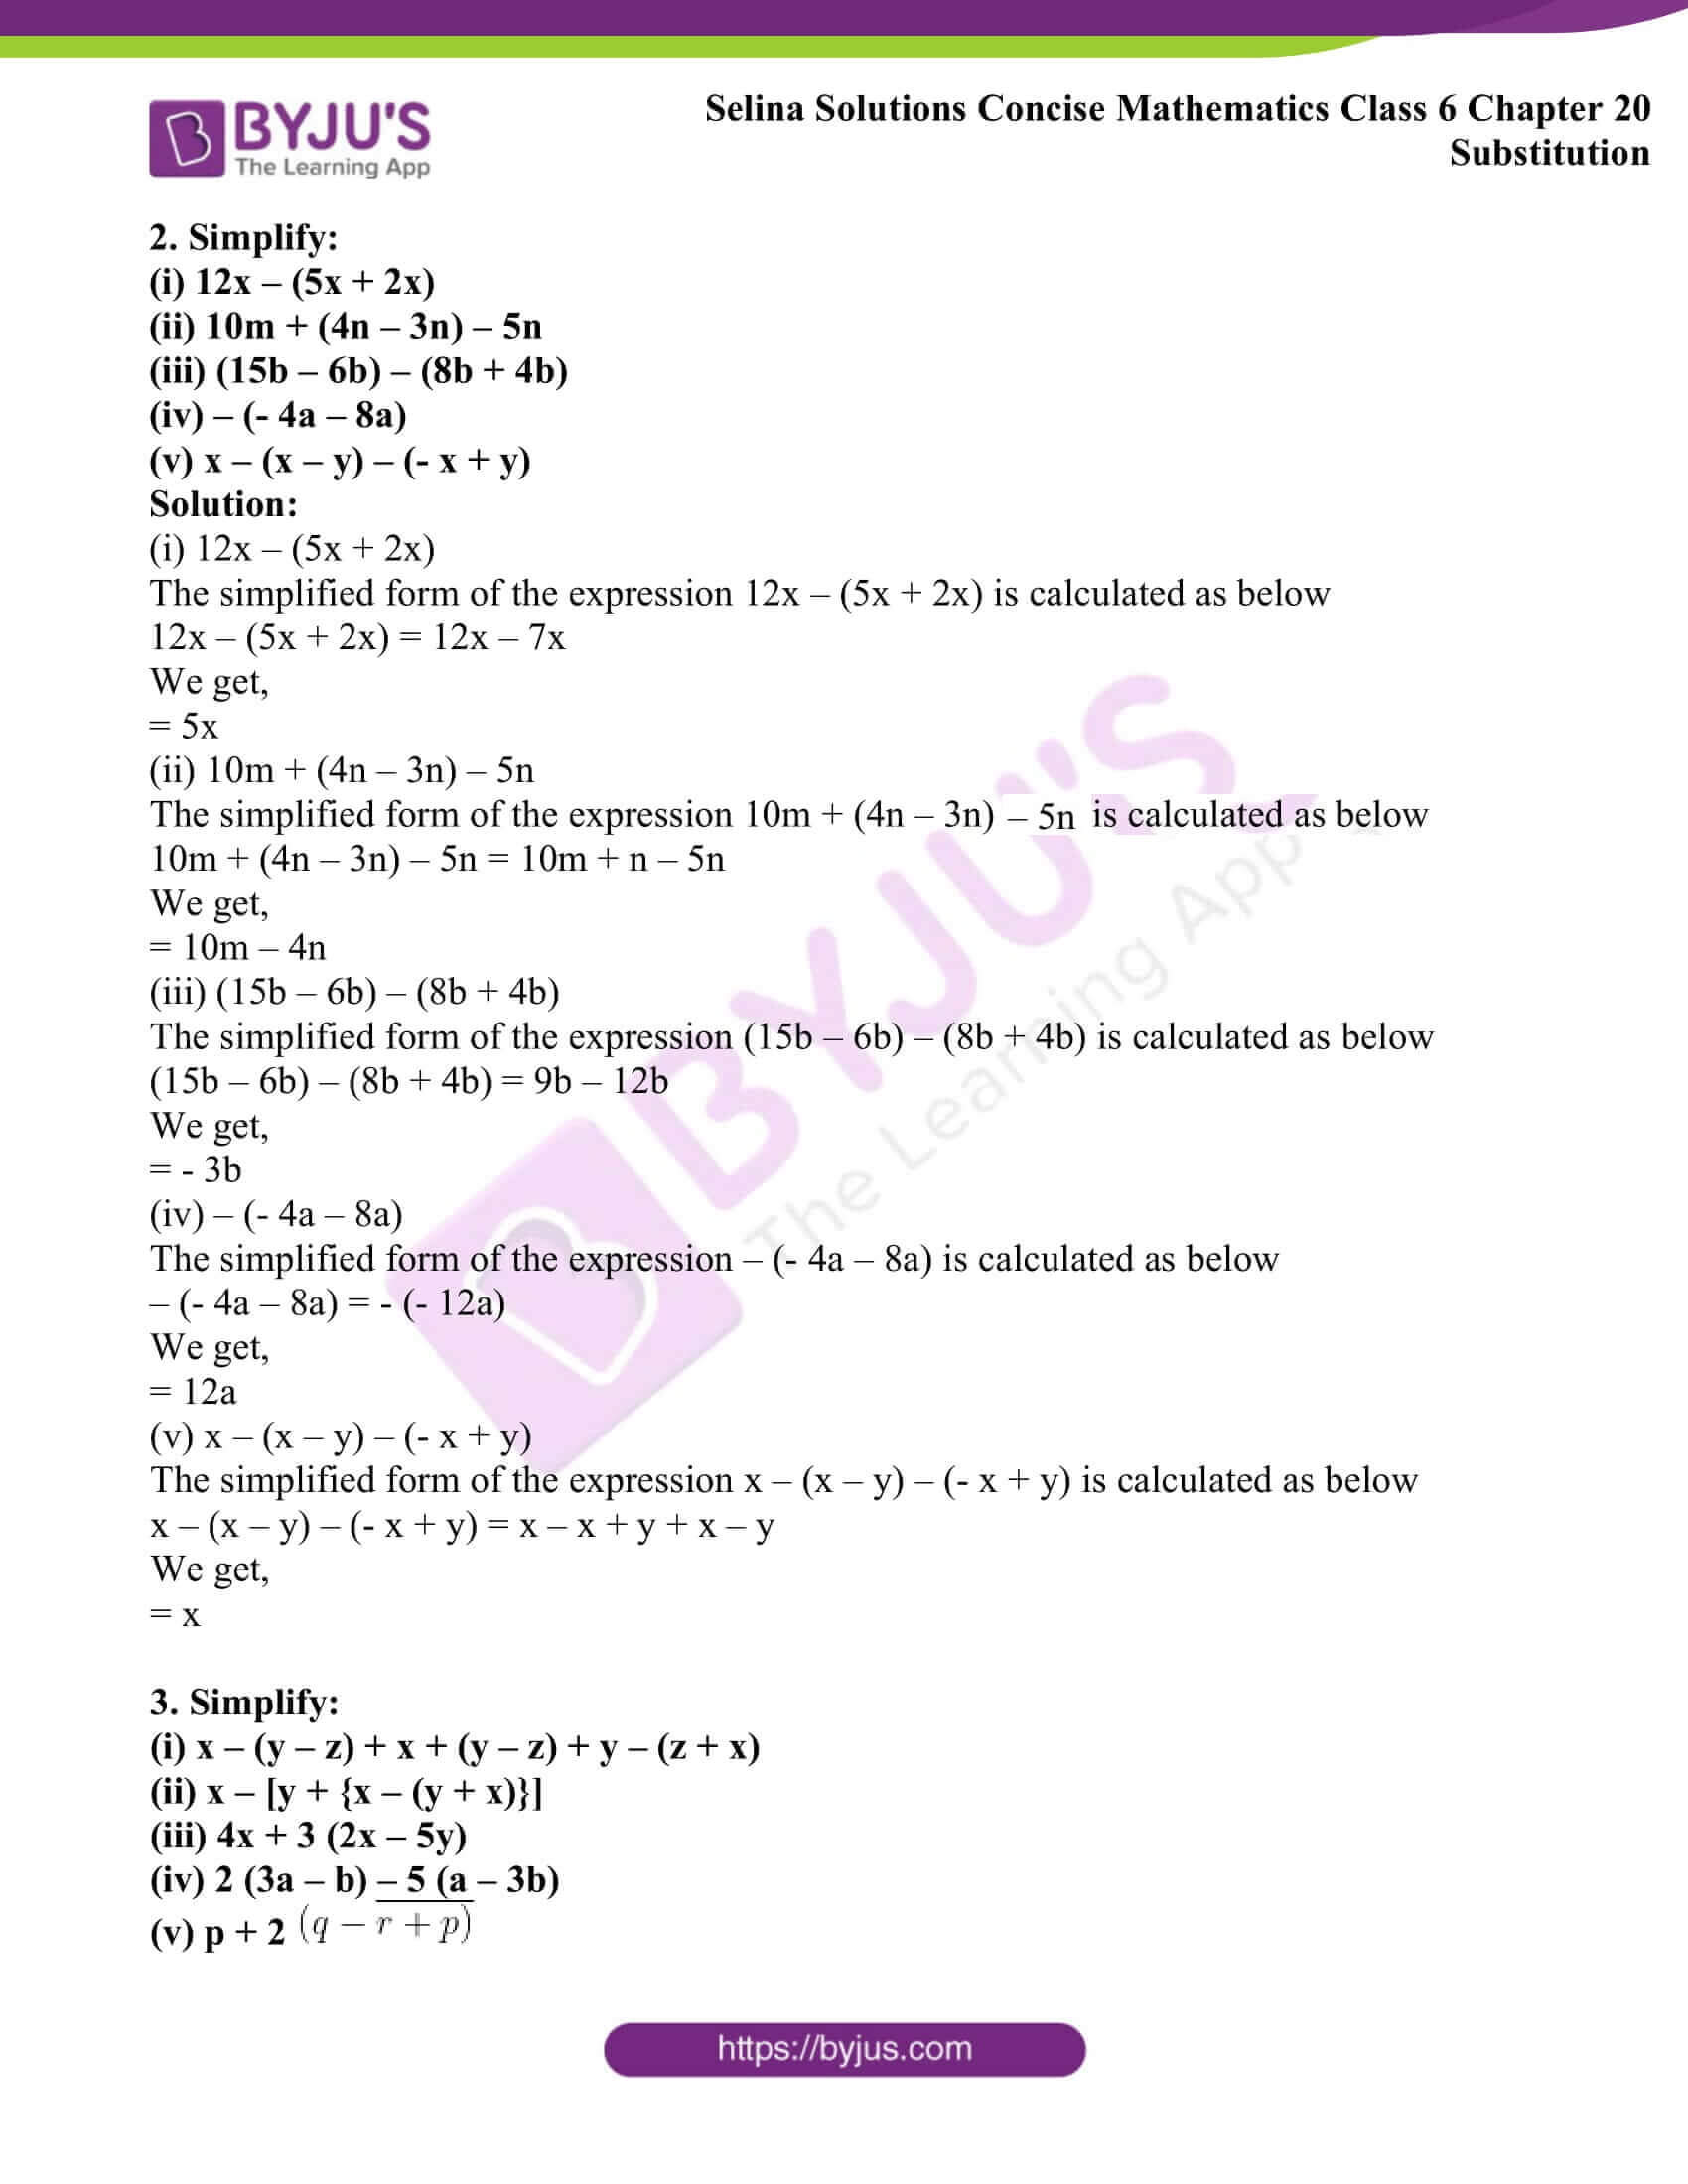 selina solutions concise math class 6 chapter 20 ex b 2